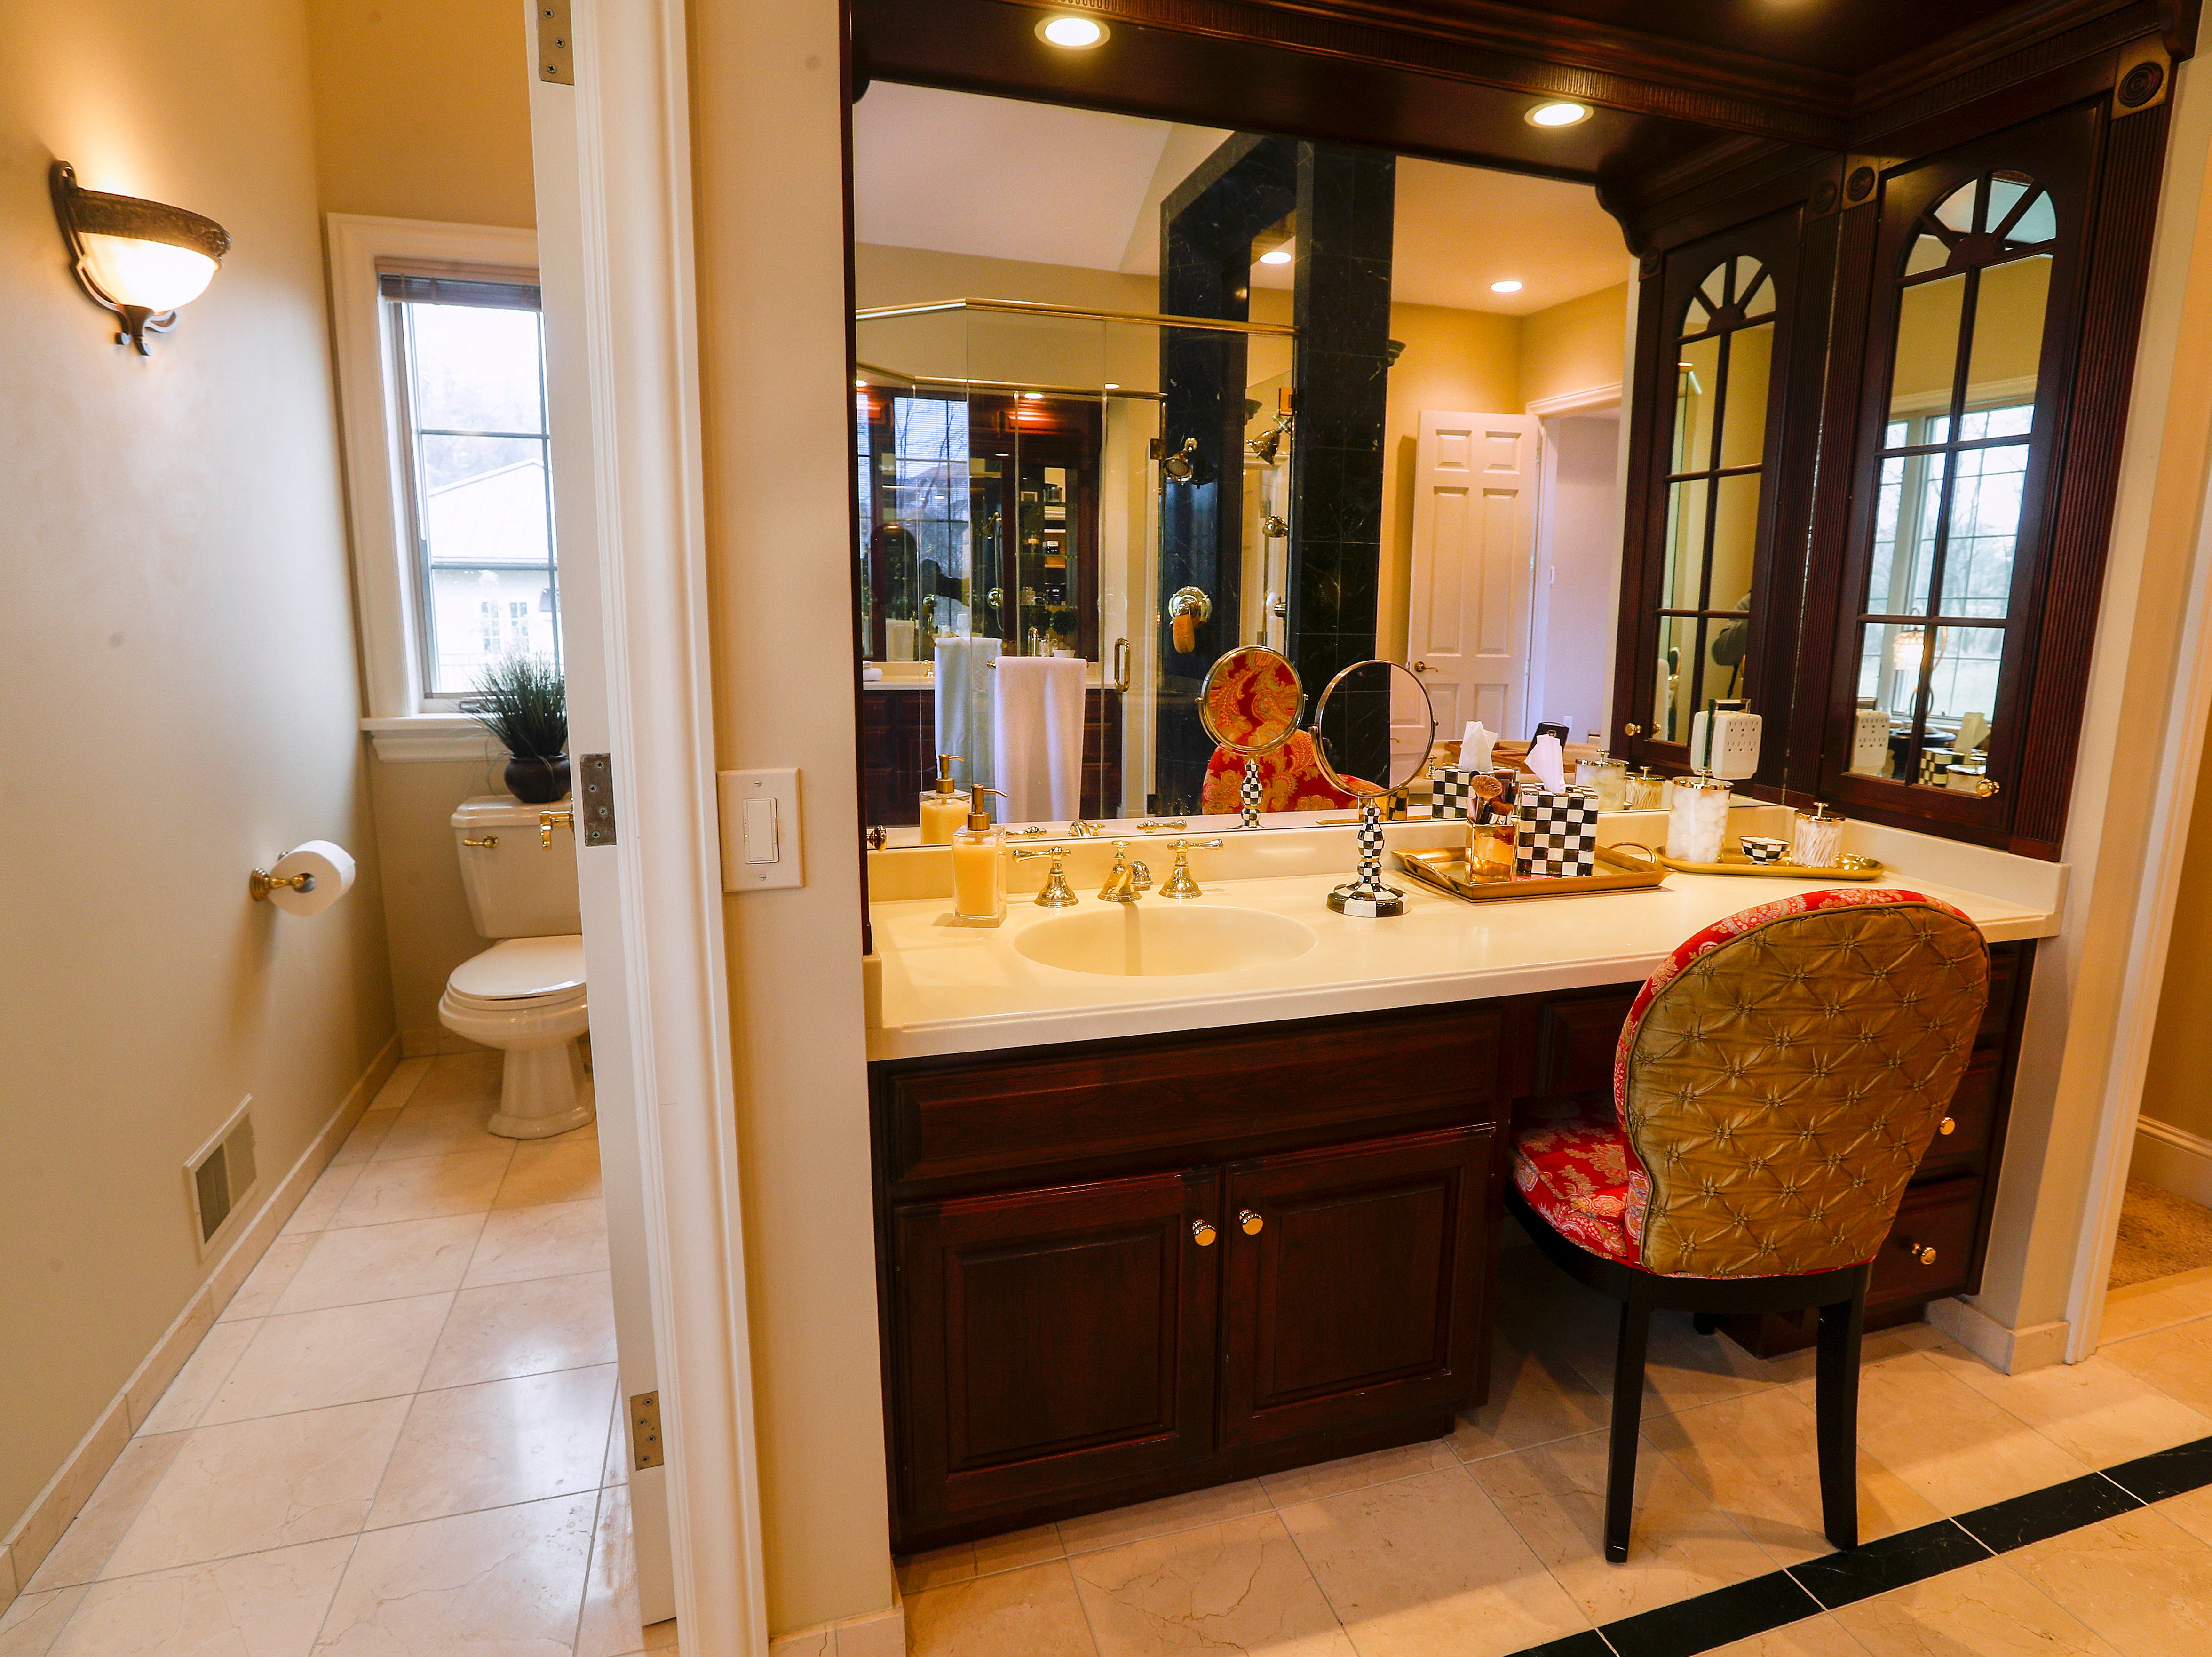 A makeup area in the master bathroom.